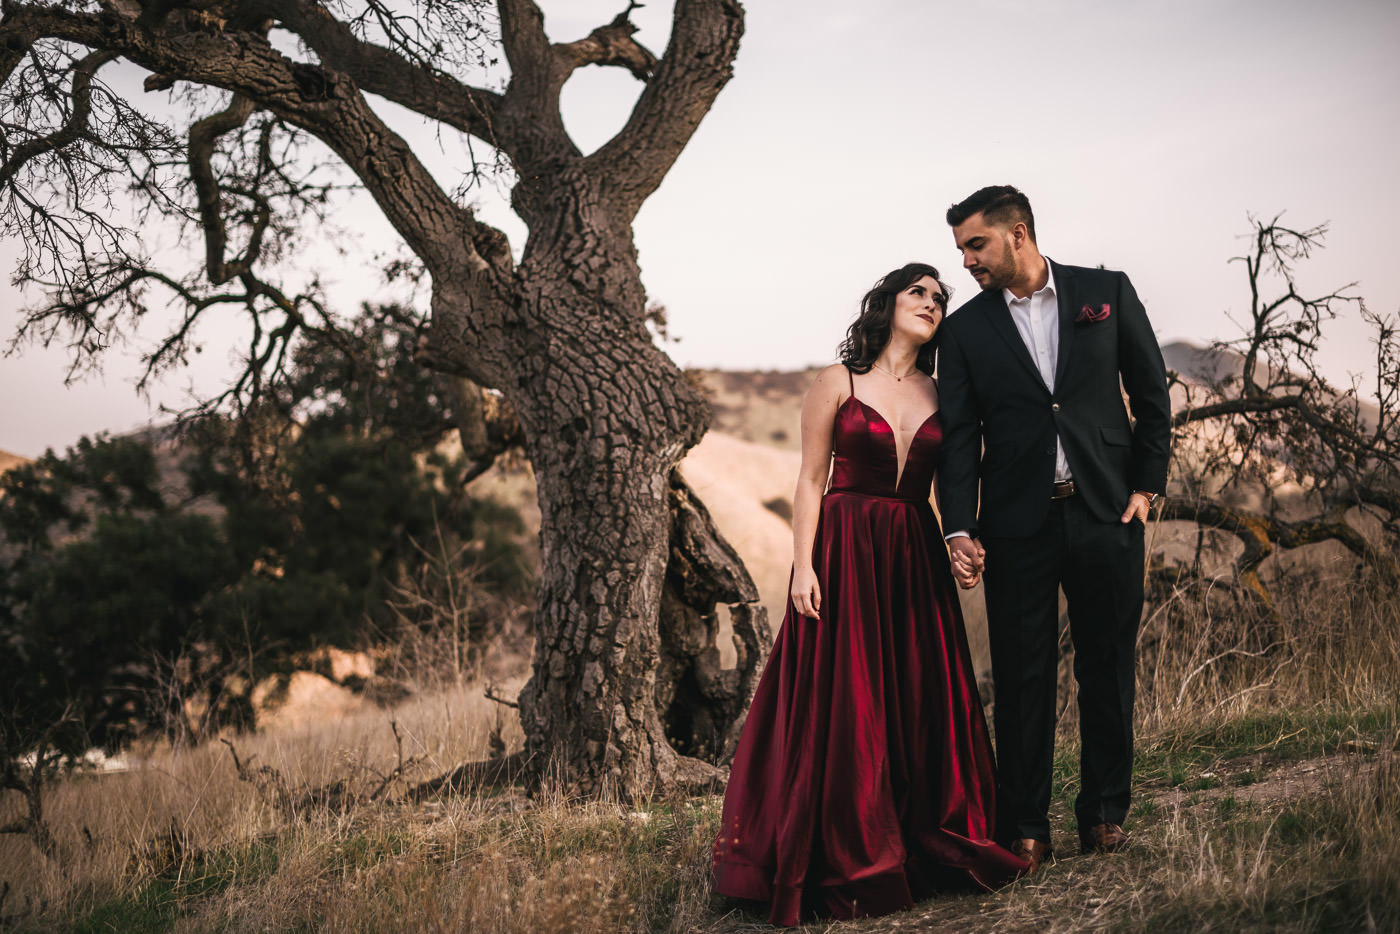 Bride looks at her future husband with love in her eyes in front of a dead tree in Malibu.